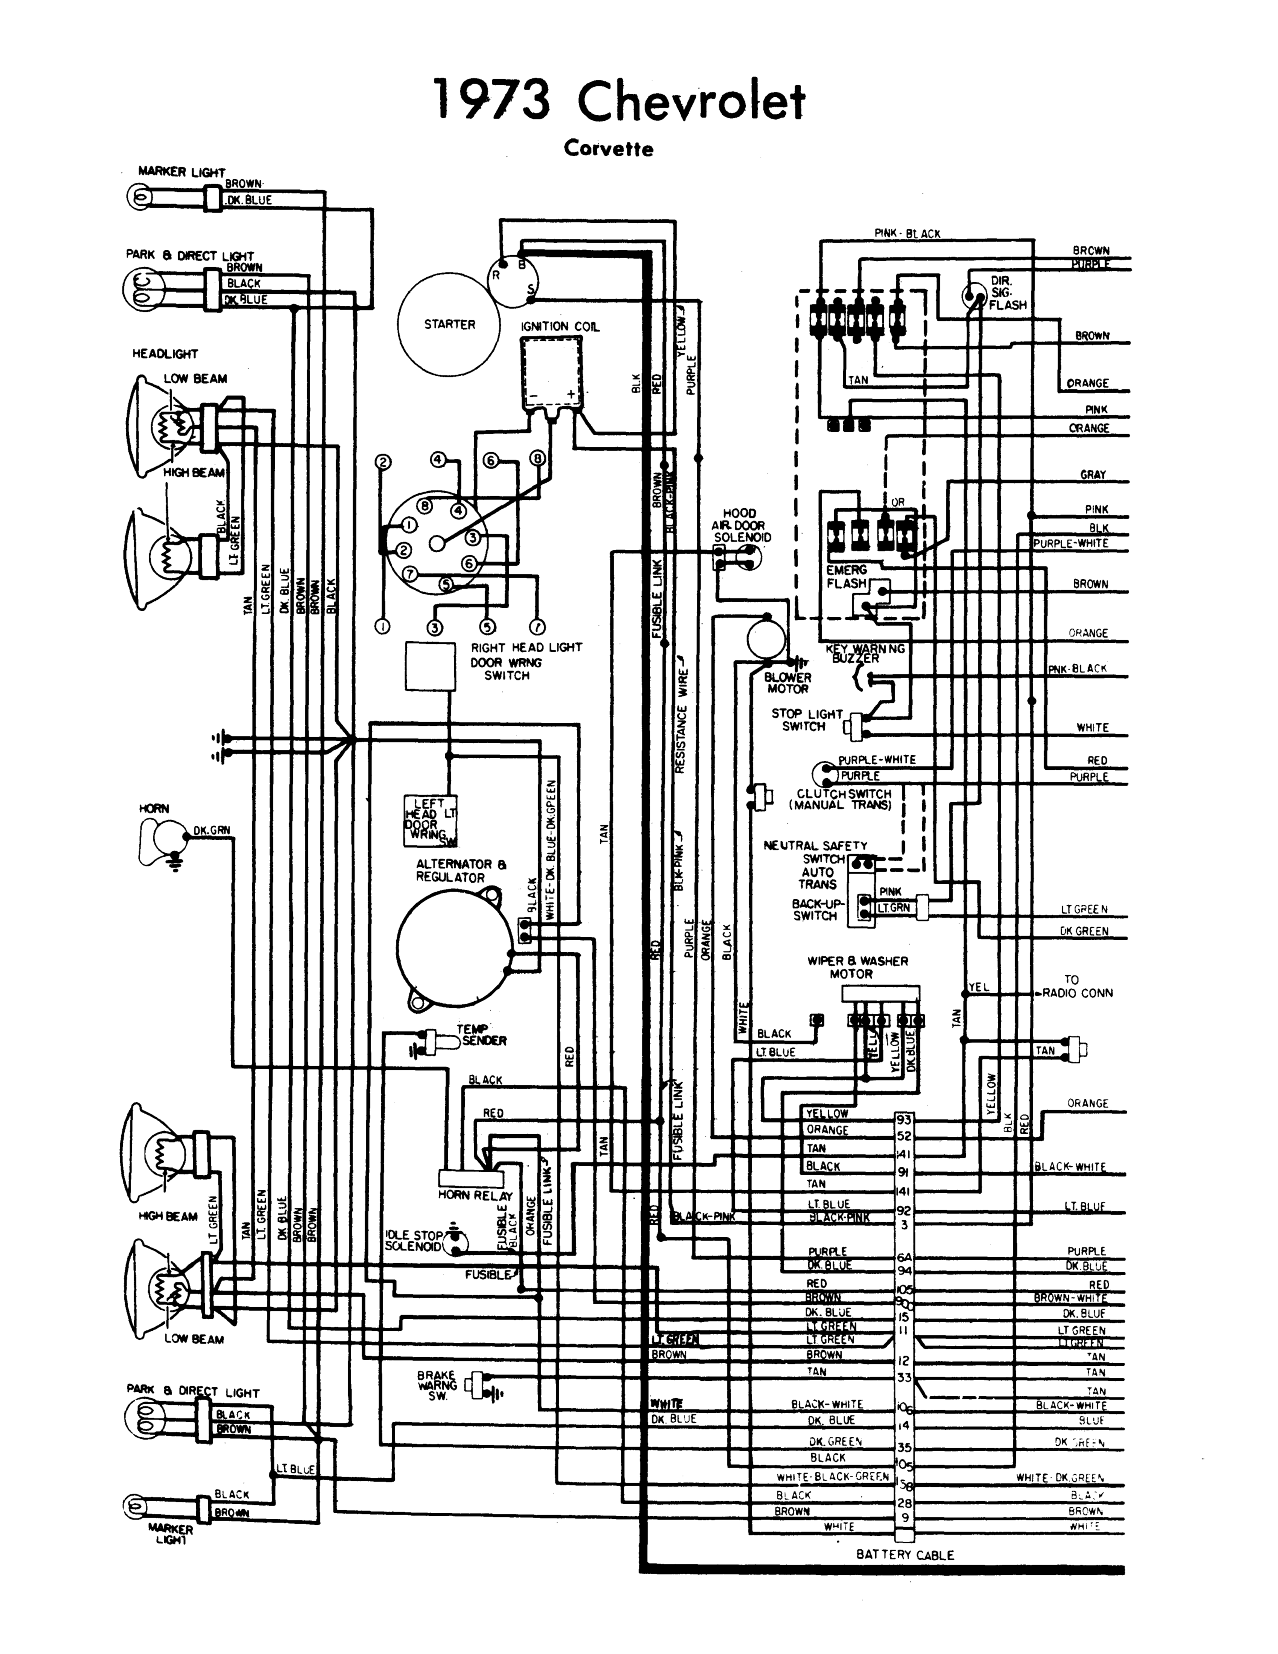 wiring diagram 1973 corvette | Chevy Corvette 1973 Wiring ... on 67 camaro wiring harness diagram, 73 plymouth alternator diagram, mopar starter relay wiring diagram, 75 camaro light wiring diagram, 1977 camaro engine compartment wiring diagram, ford external voltage regulator diagram,